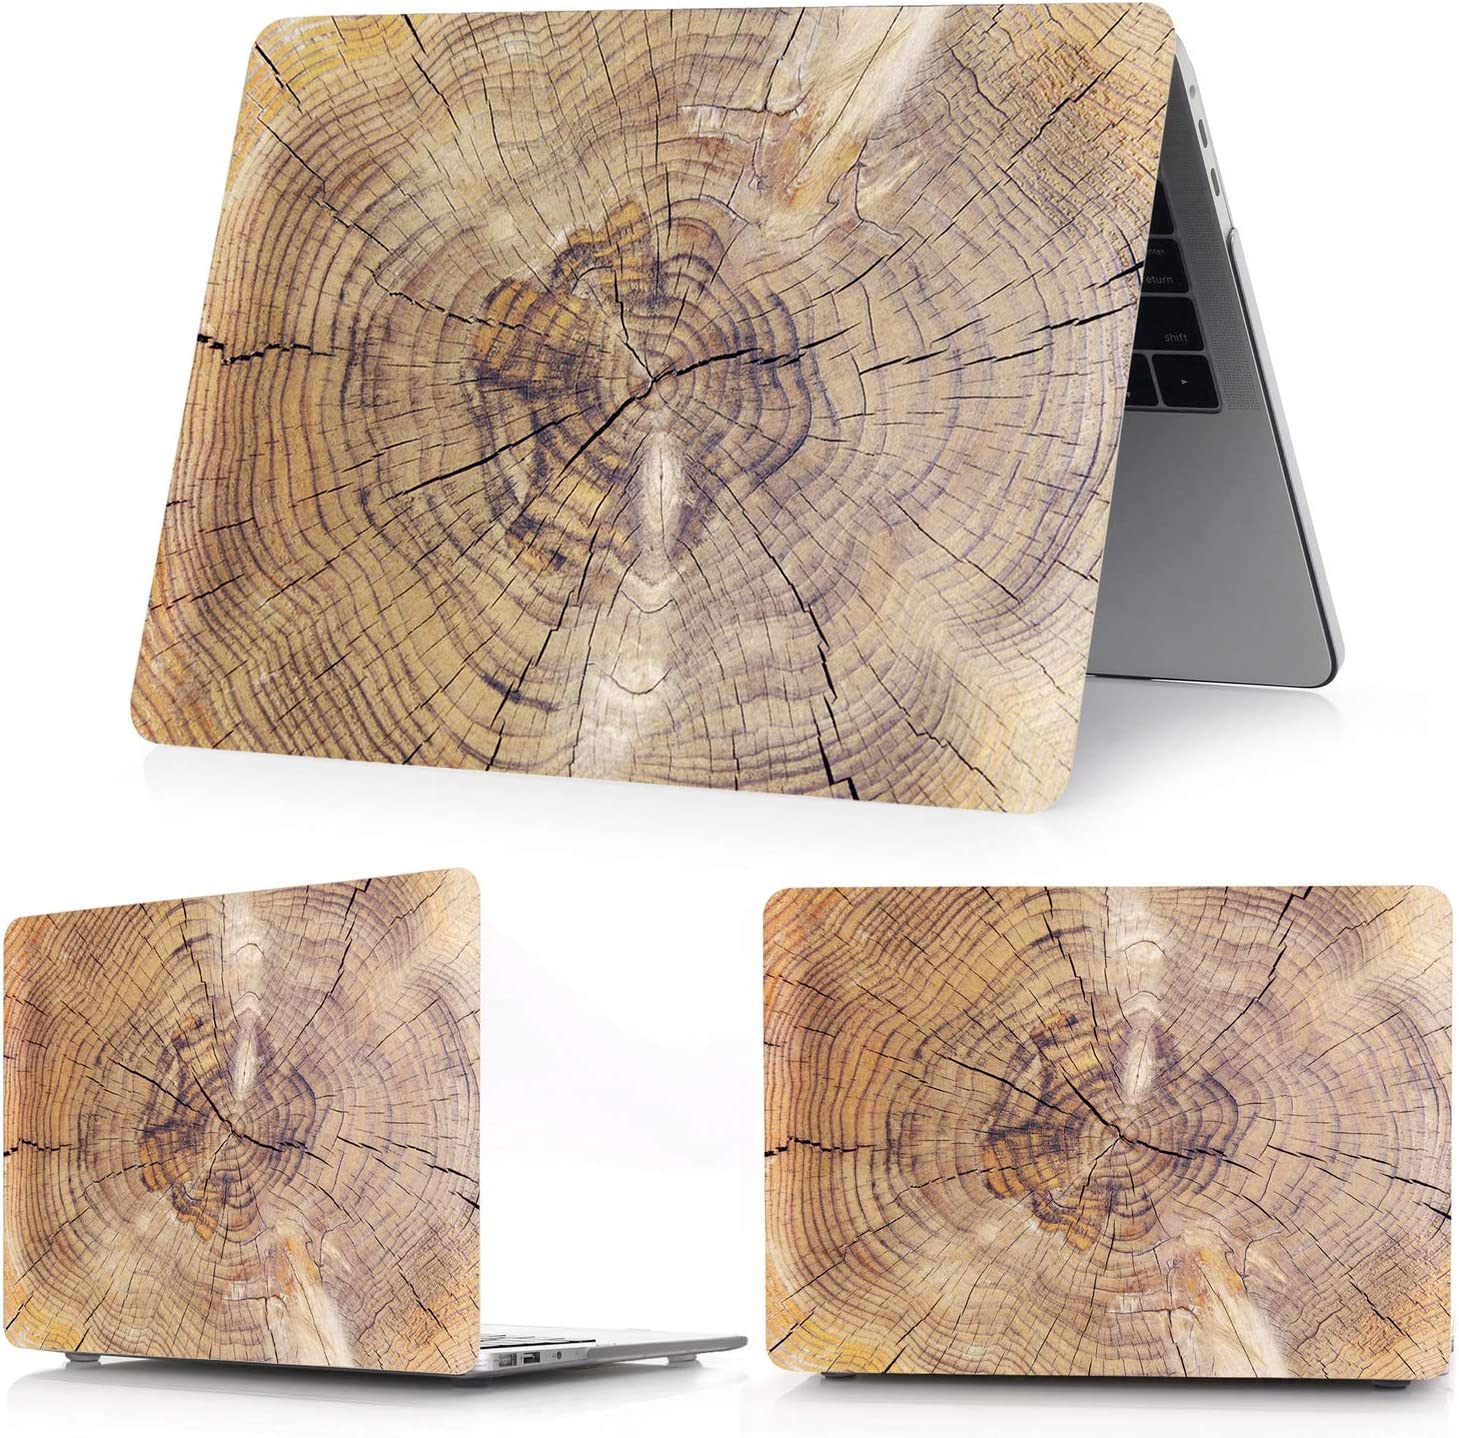 2020 for MacBook Air Pro 13 15 Touch bar Laptop,Case for MacBook Air Pro Retina 11 12 13 15 16 inch Wood Grain Hard Cover-Crystal Transparent-Air 11 A1370 A1465